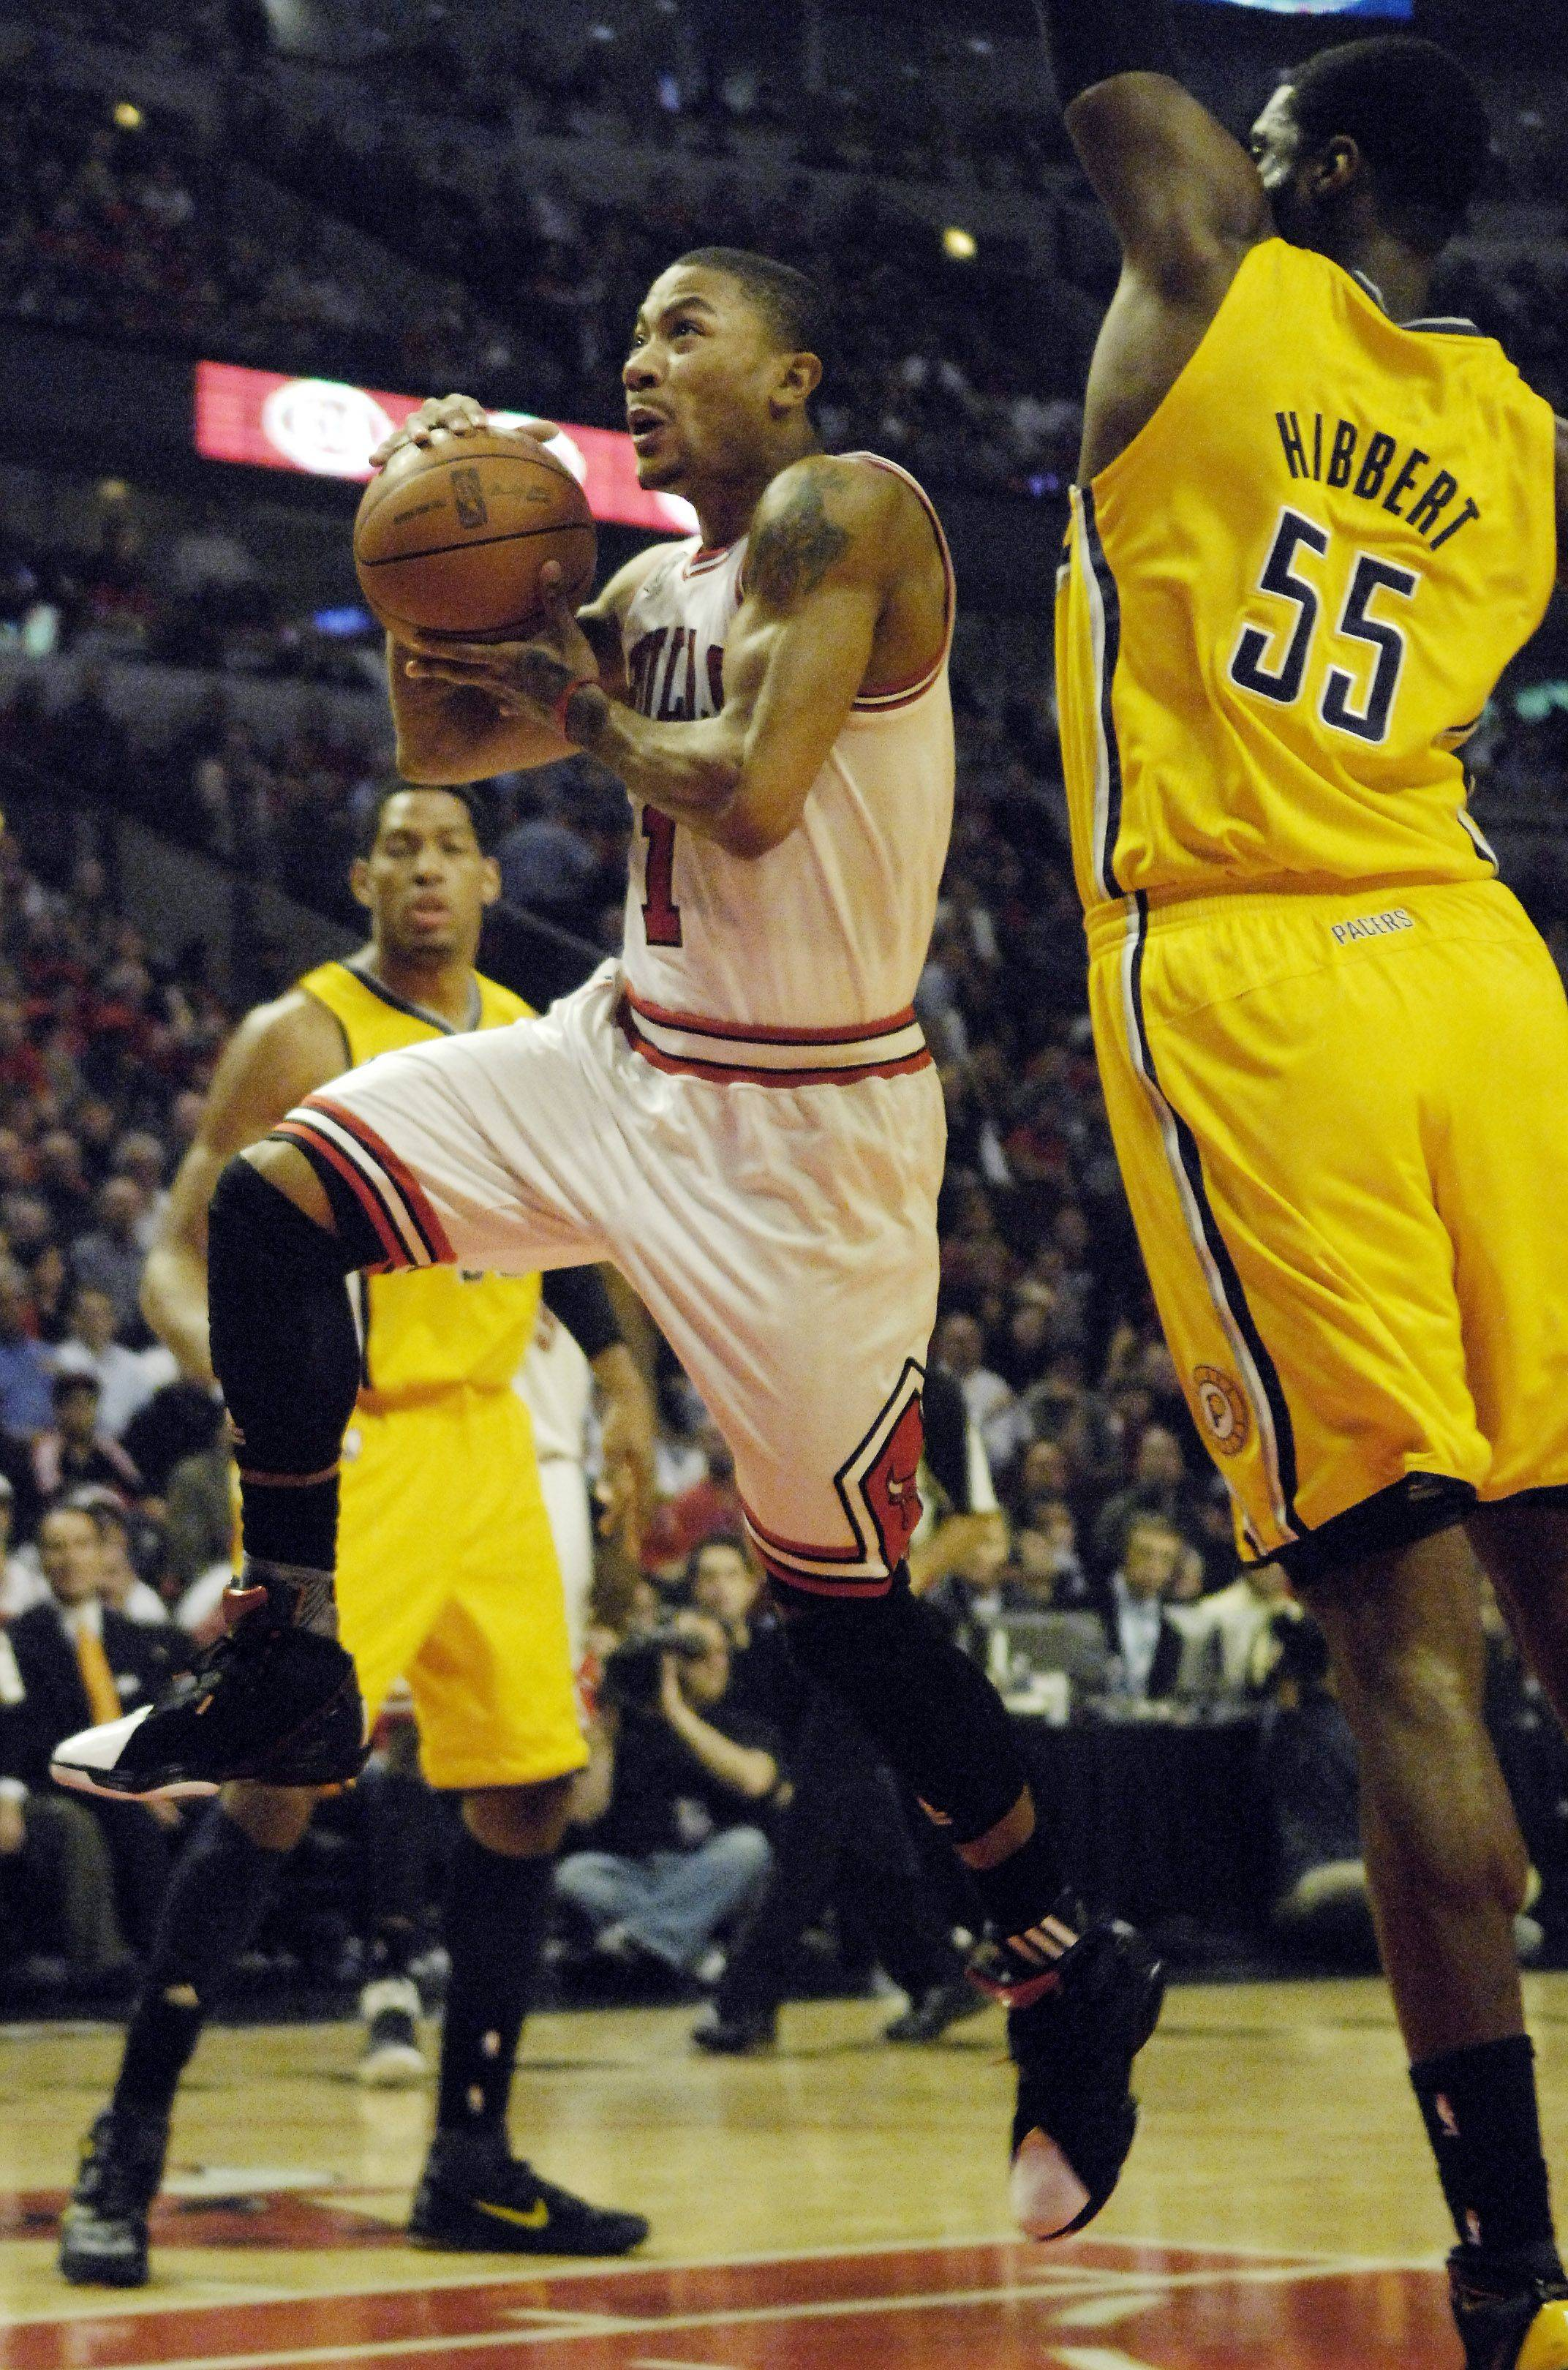 Bulls point guard Derrick Rose drives to the basket past Indiana Pacers center Roy Hibbert during game 5.